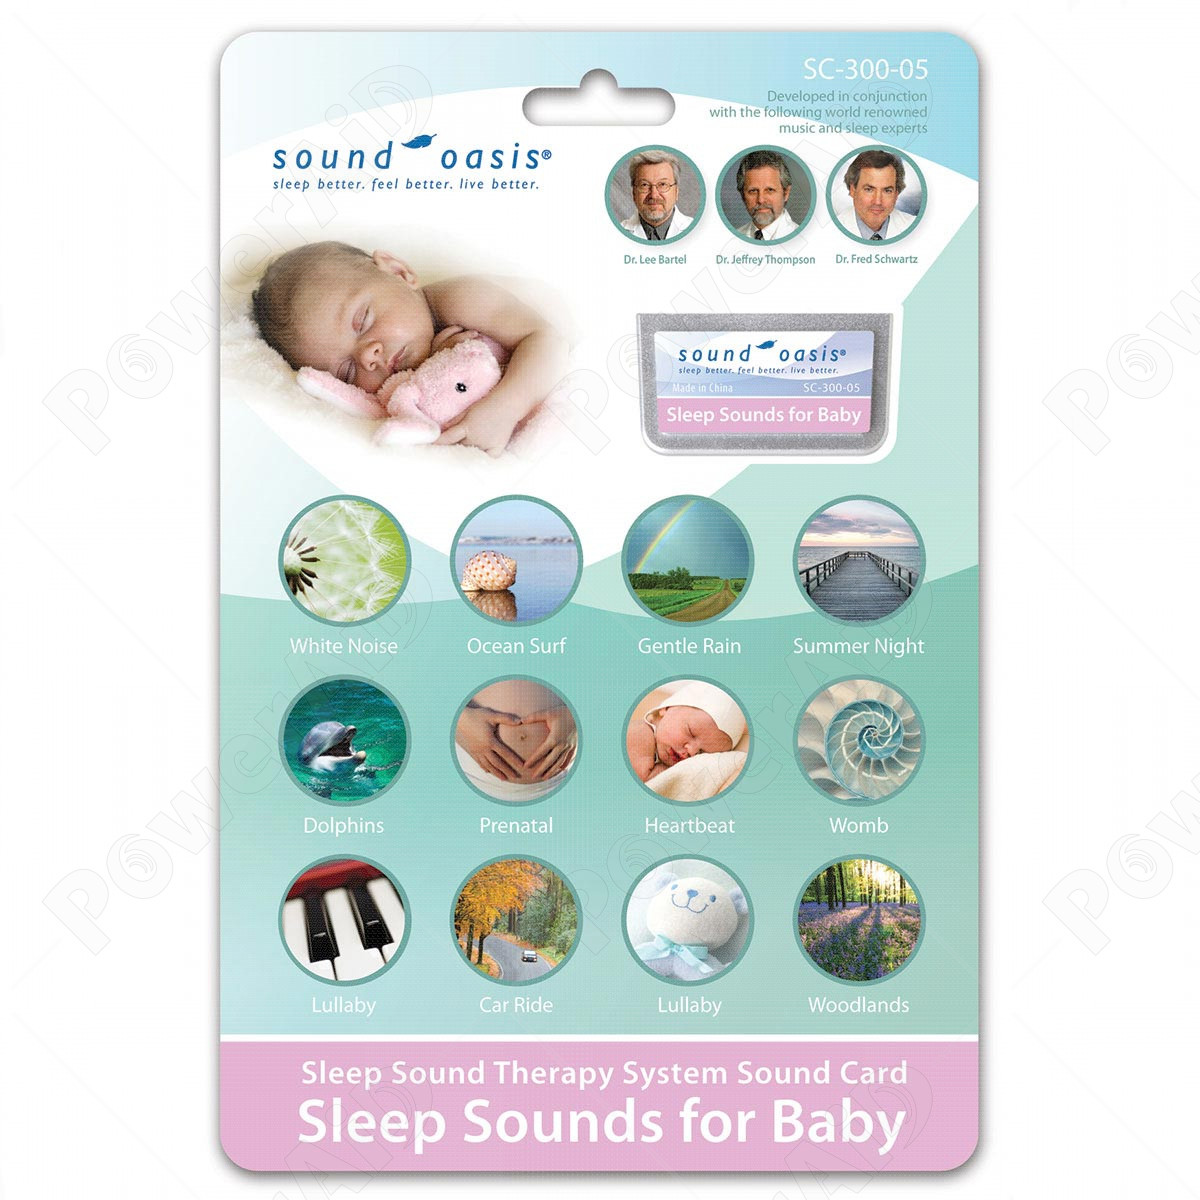 Sound Oasis - Scheda Sonora SC-300-05 Sounds For Baby